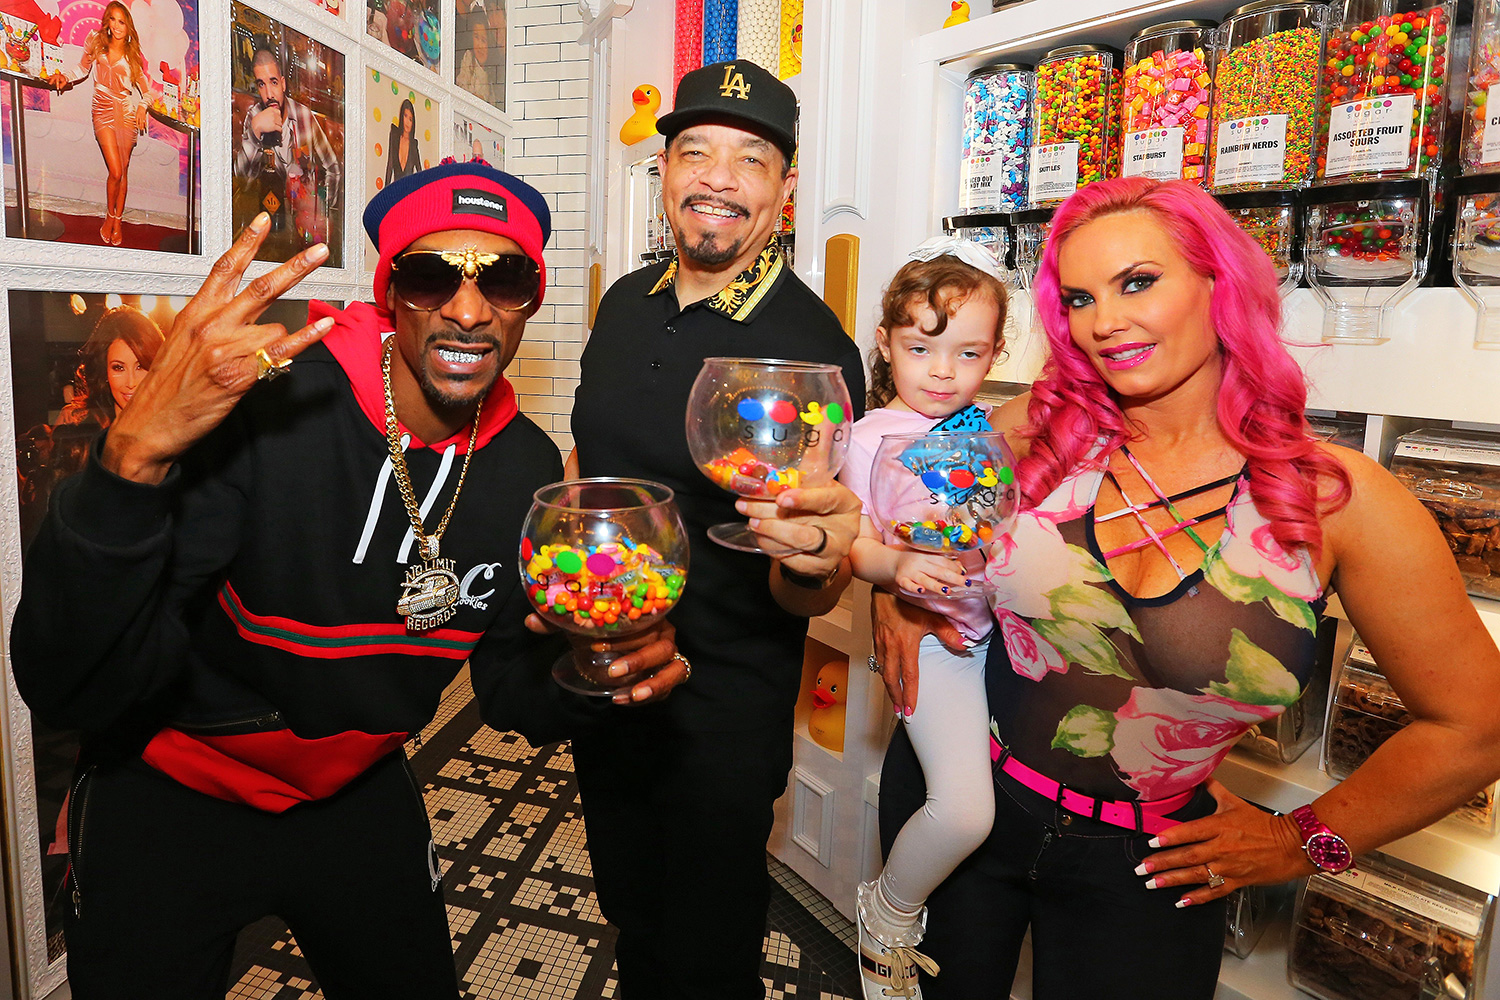 Snoop Dogg along with Ice-T and Coco Make a Special Appearance at the New Sugar Factory American Brasserie at Seminole Hard Rock Hotel & Casino Tampa on Sunday, Dec. 29, 2019